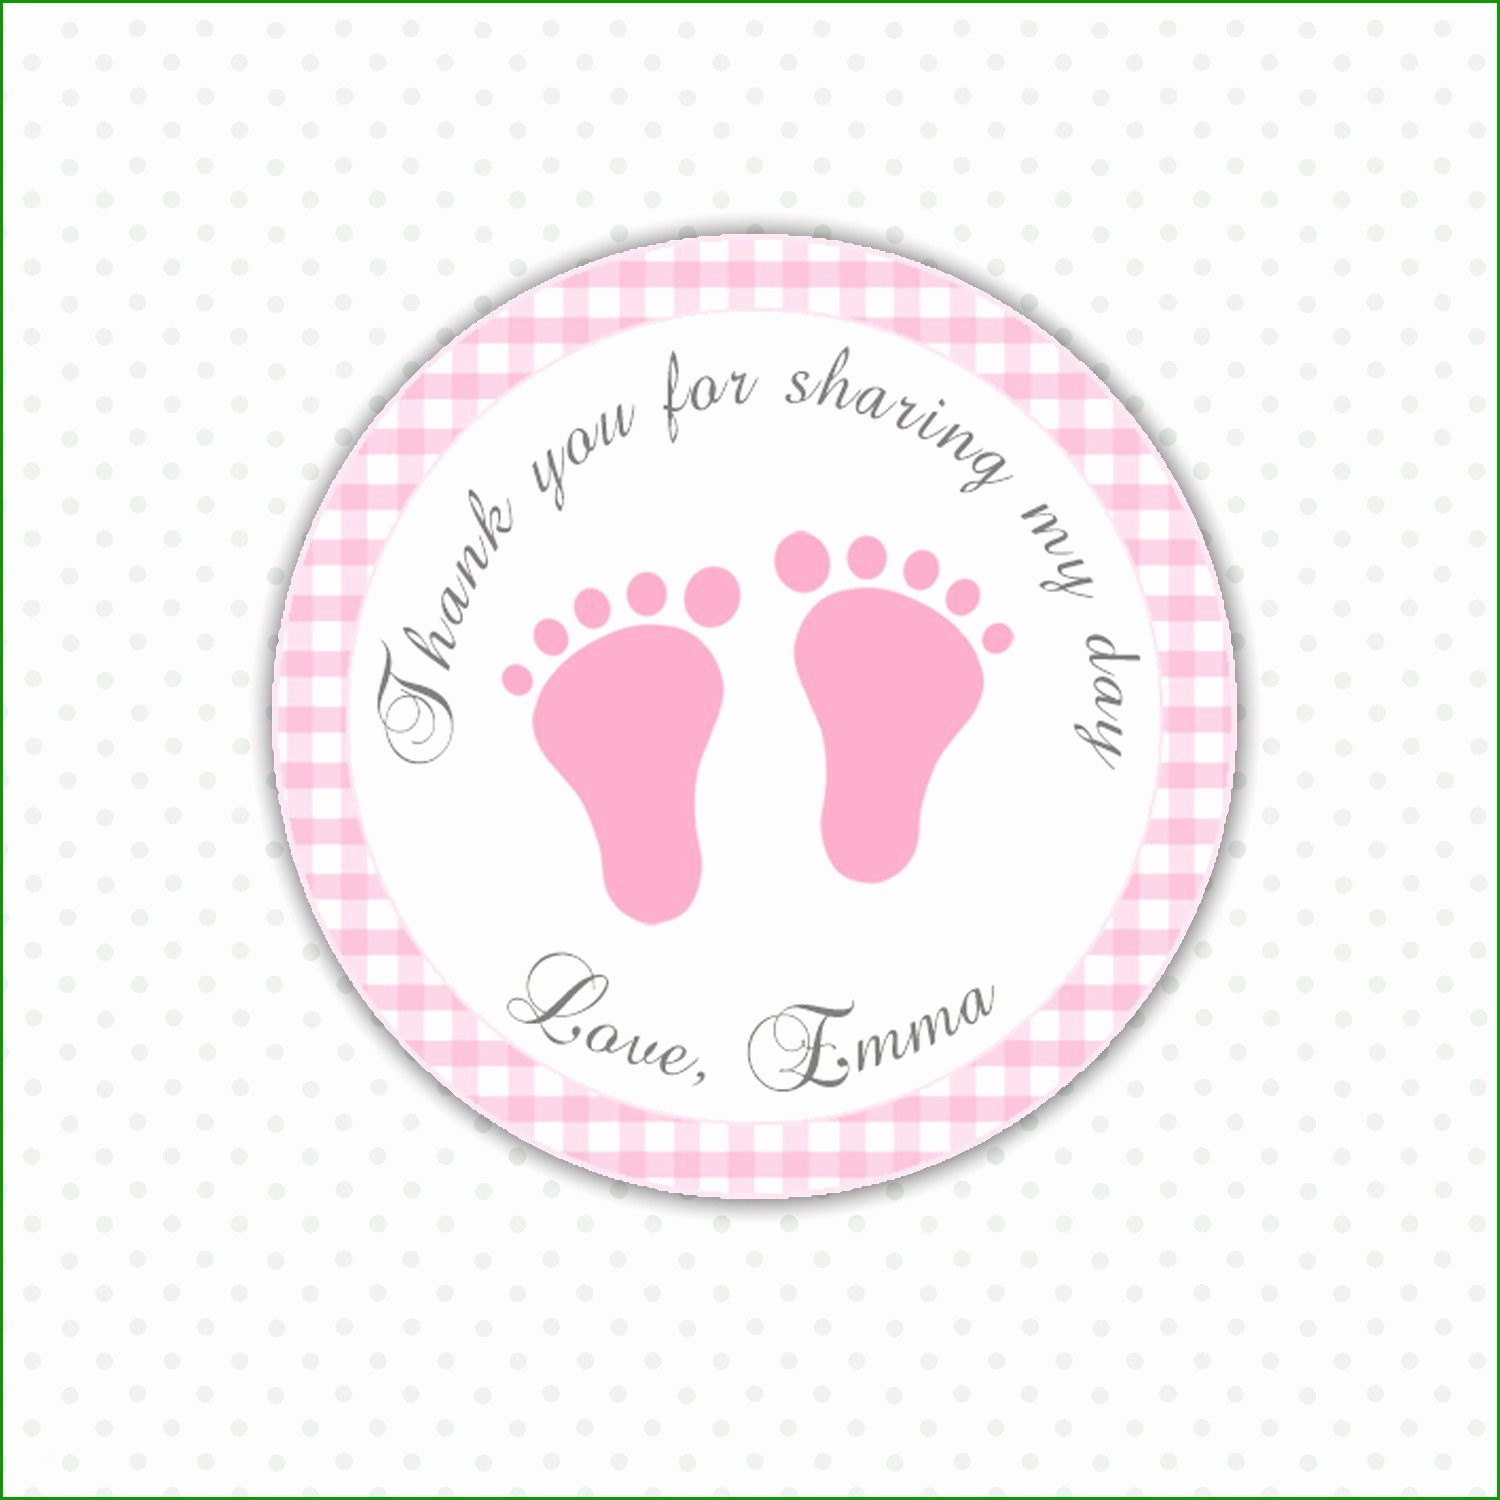 Free Printable Baby Shower Favor Tags (71+ Images In Collection) Page 2 - Free Printable Baby Shower Favor Tags